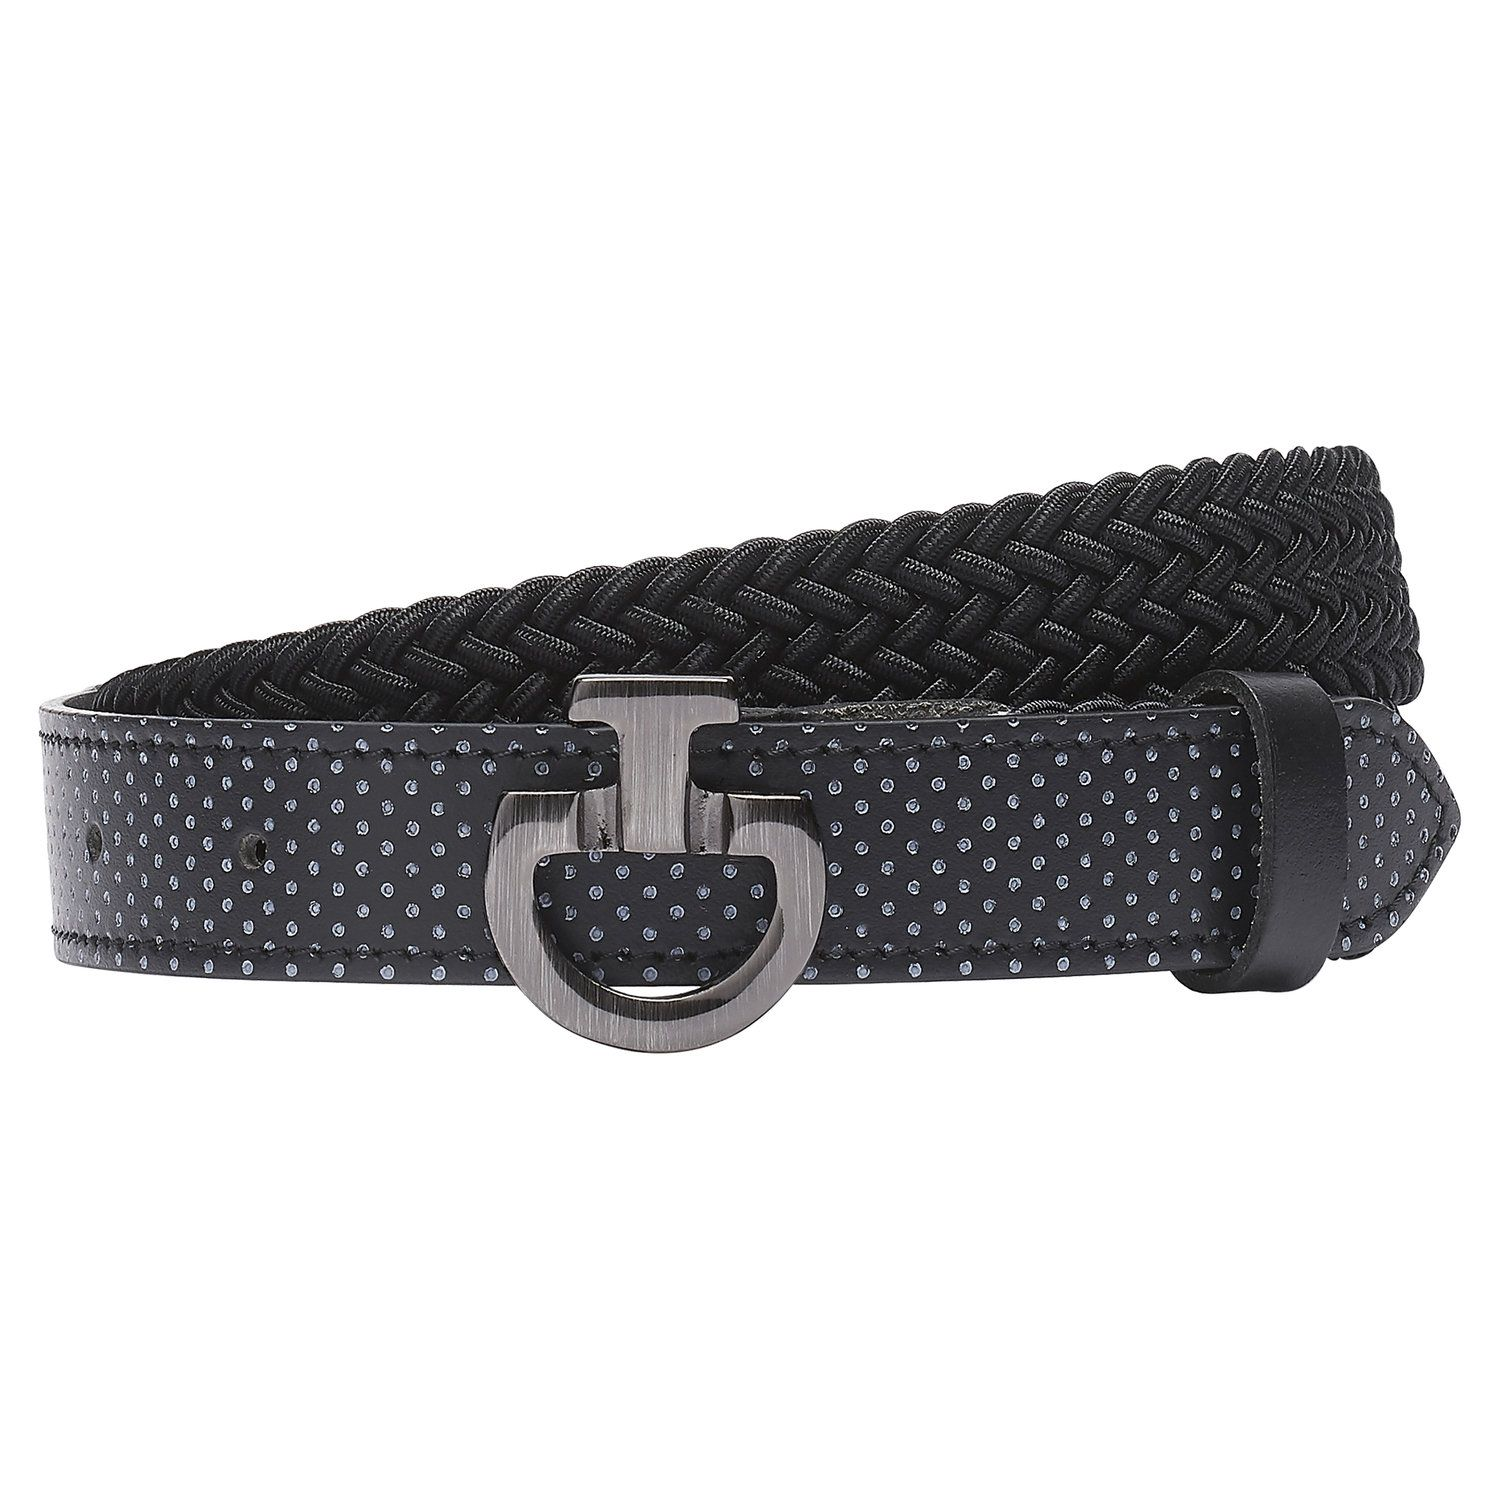 Kid's perforated leather belt